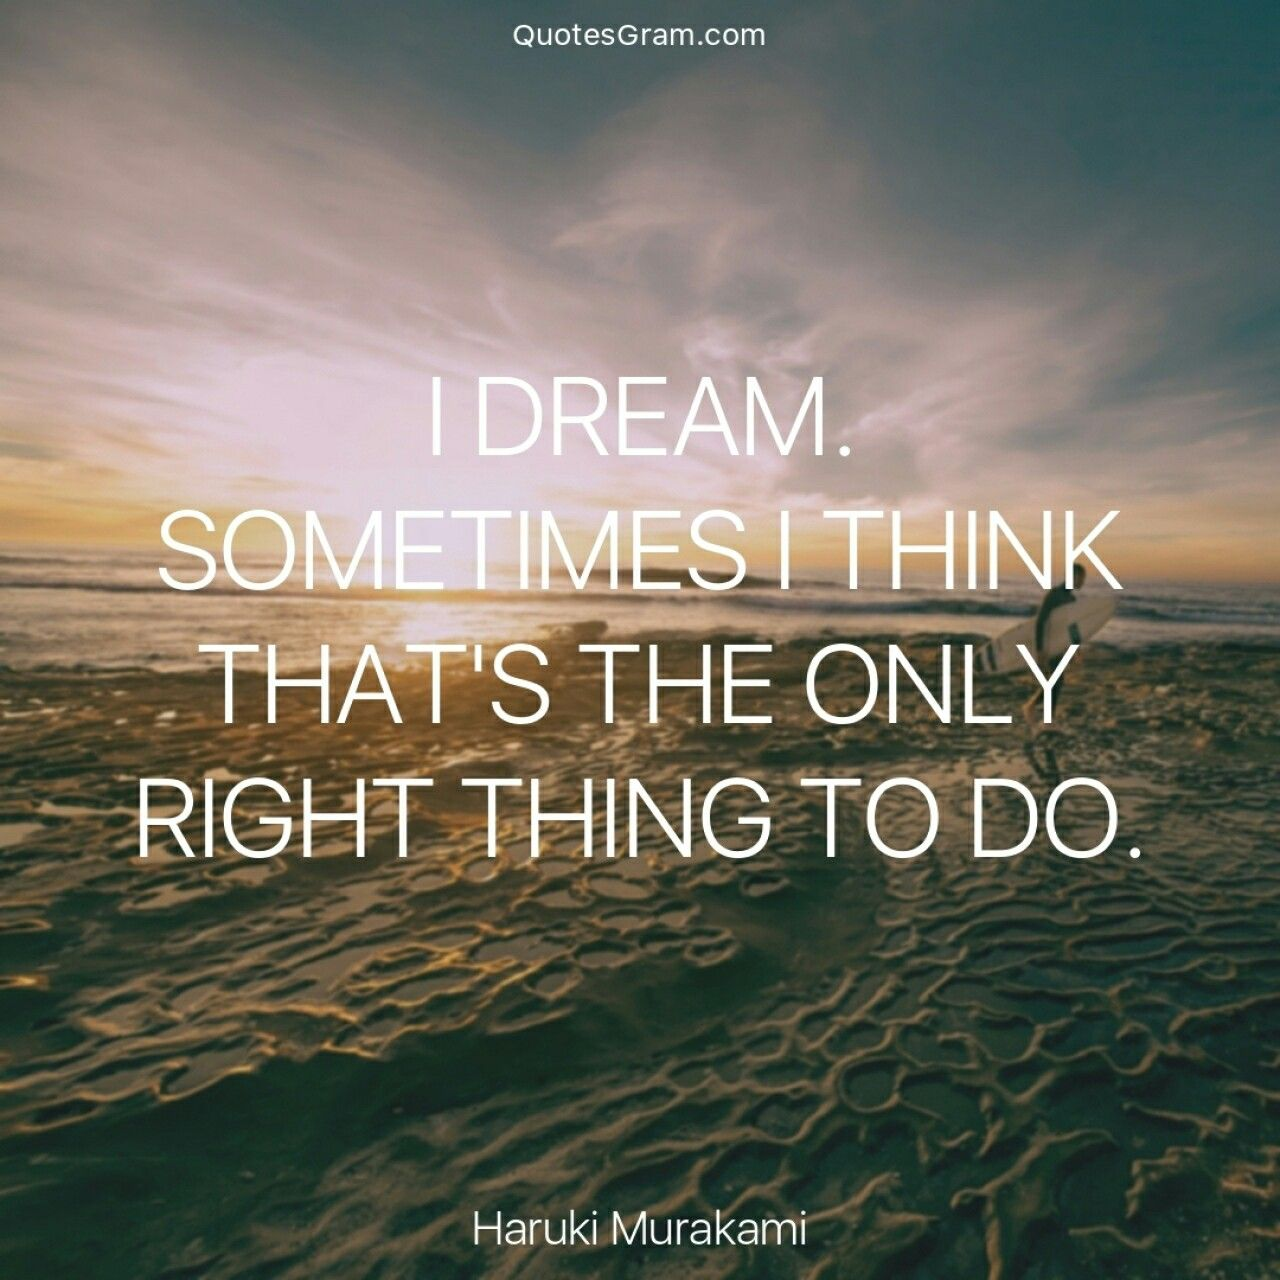 Life Quotes By Authors Pinisabela Gomez On Quotes  Pinterest